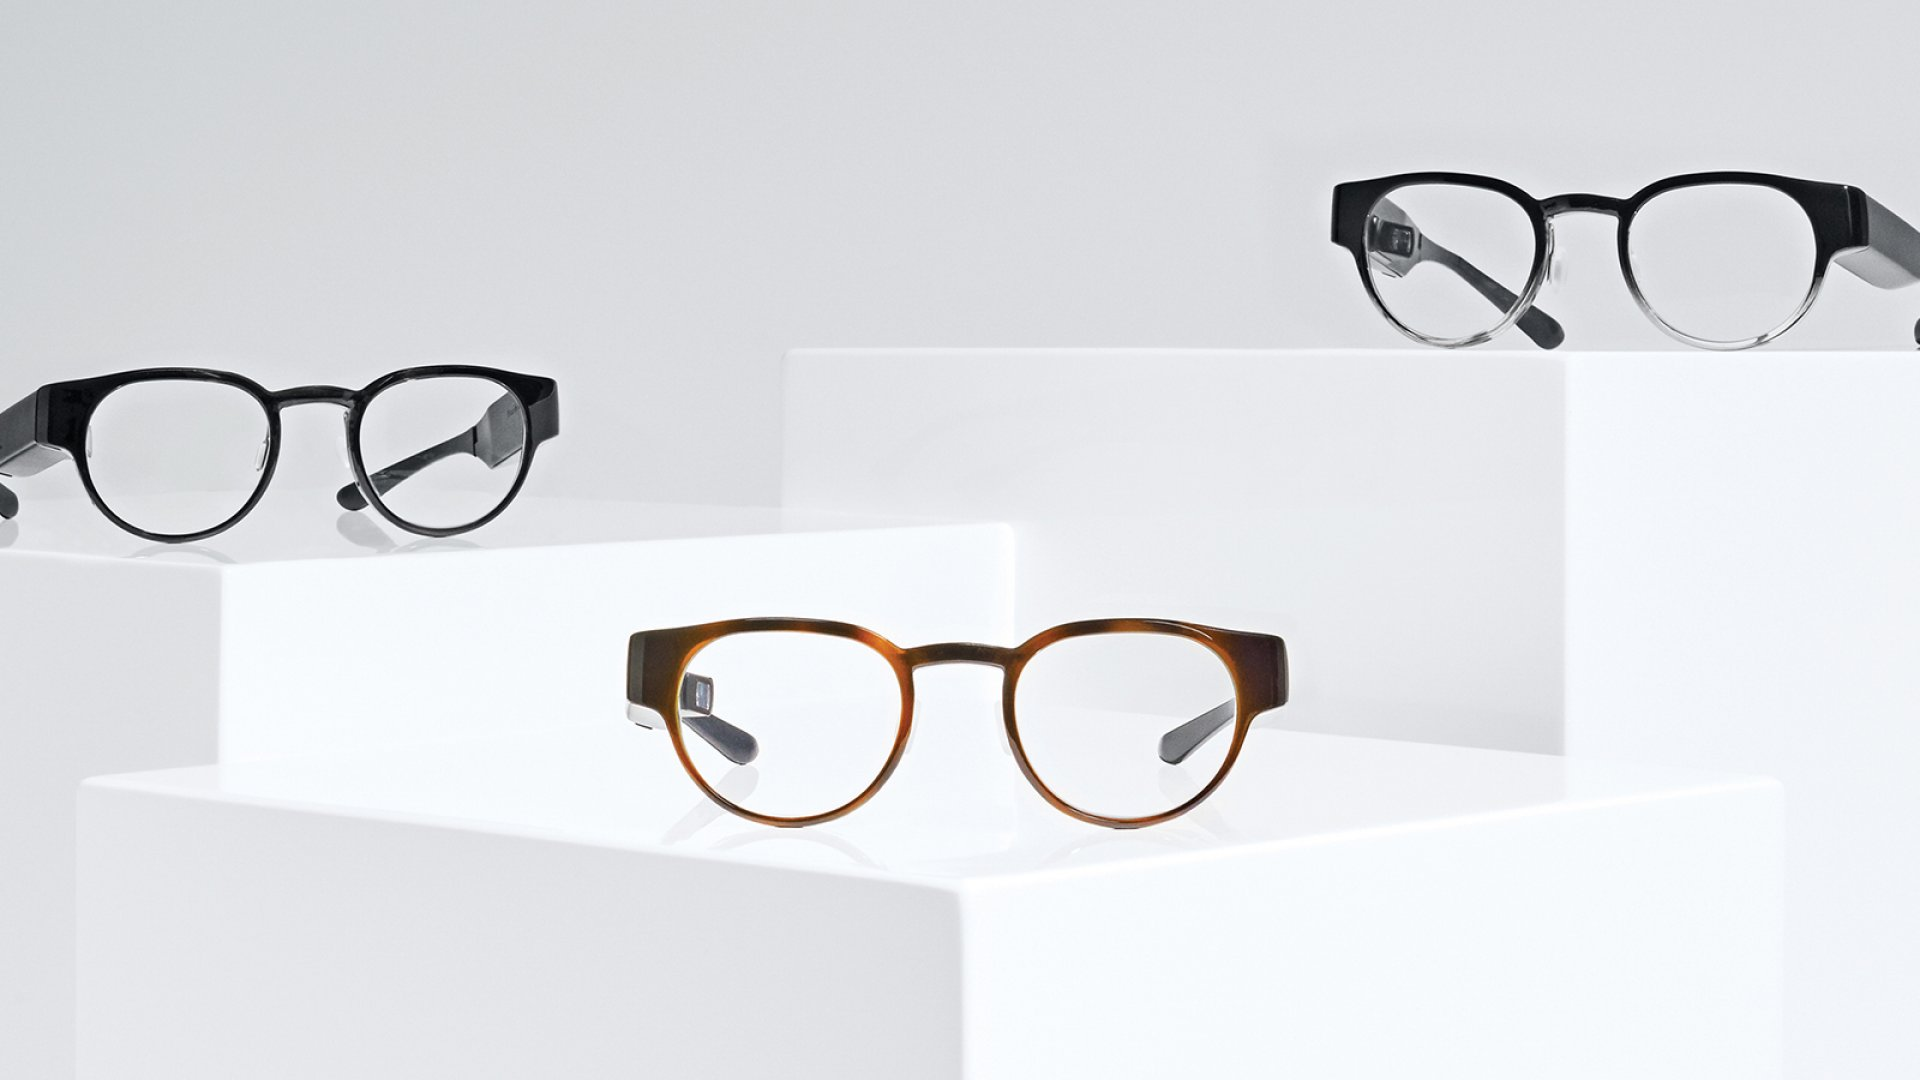 North's smart glasses called Focals.